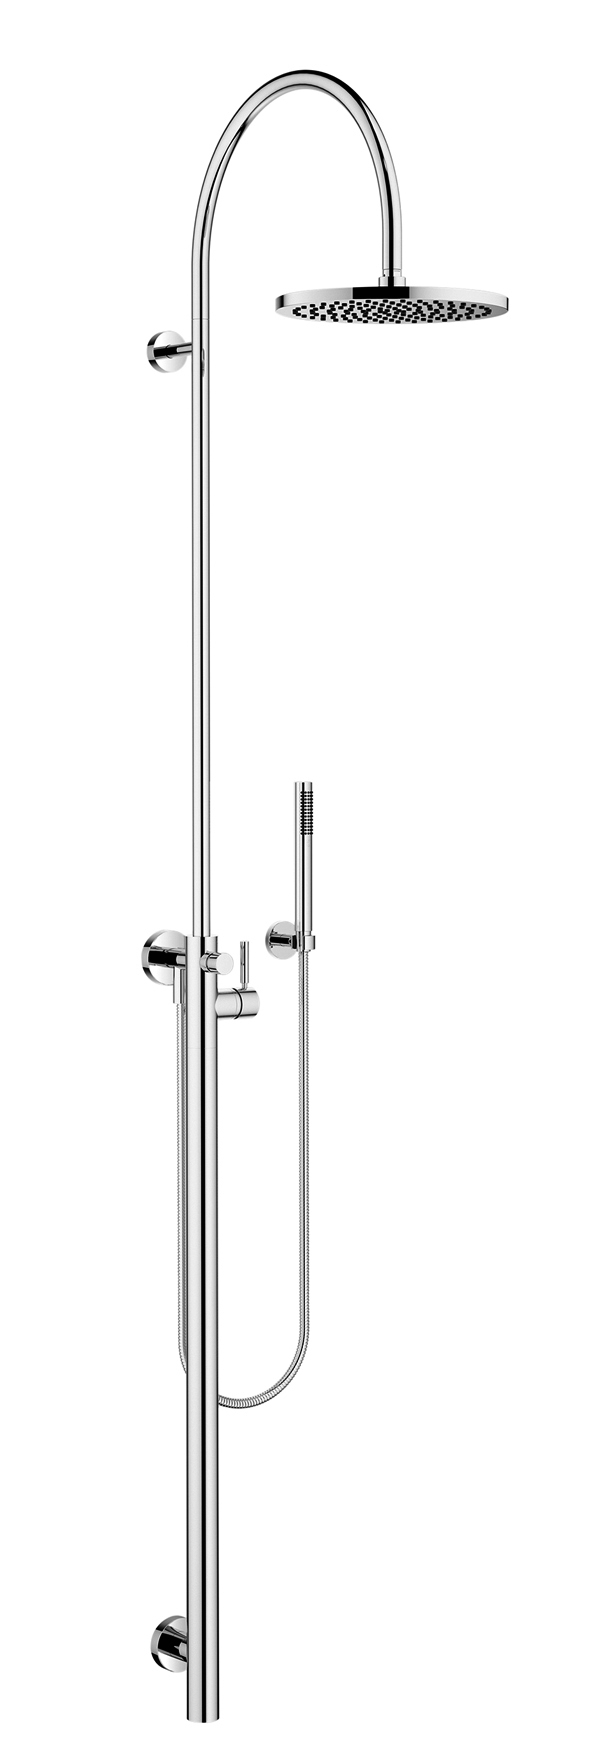 Dornbracht 26023661-000010 Meta Shower Riser with Shower Single-Lever Mixer for Wall-Mounted Installation with Rainhead And Hand